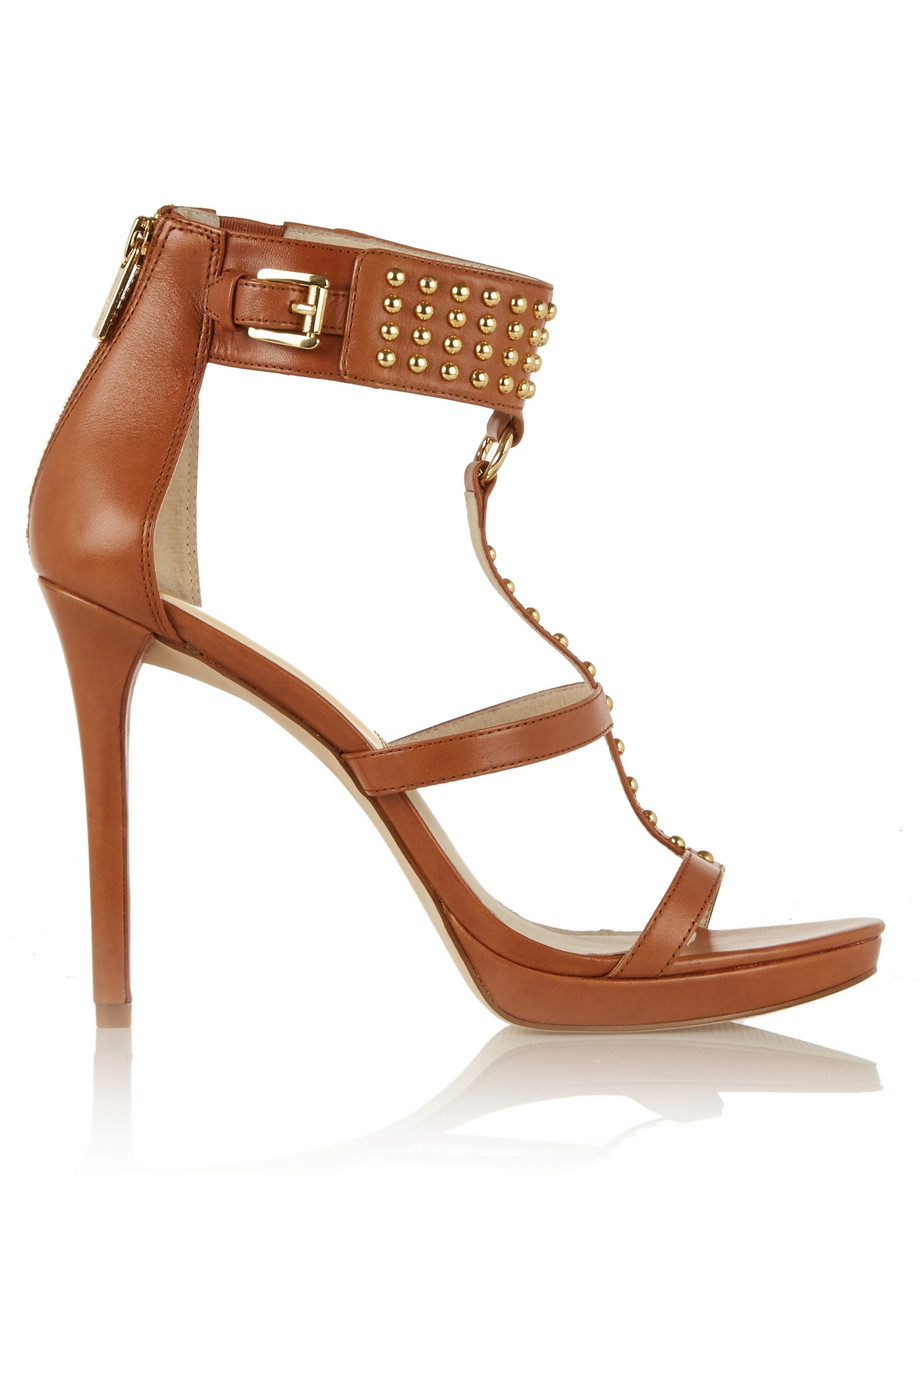 461b7dc32a3 MICHAEL Michael Kors Celena Studded Leather Sandals in Brown - Lyst